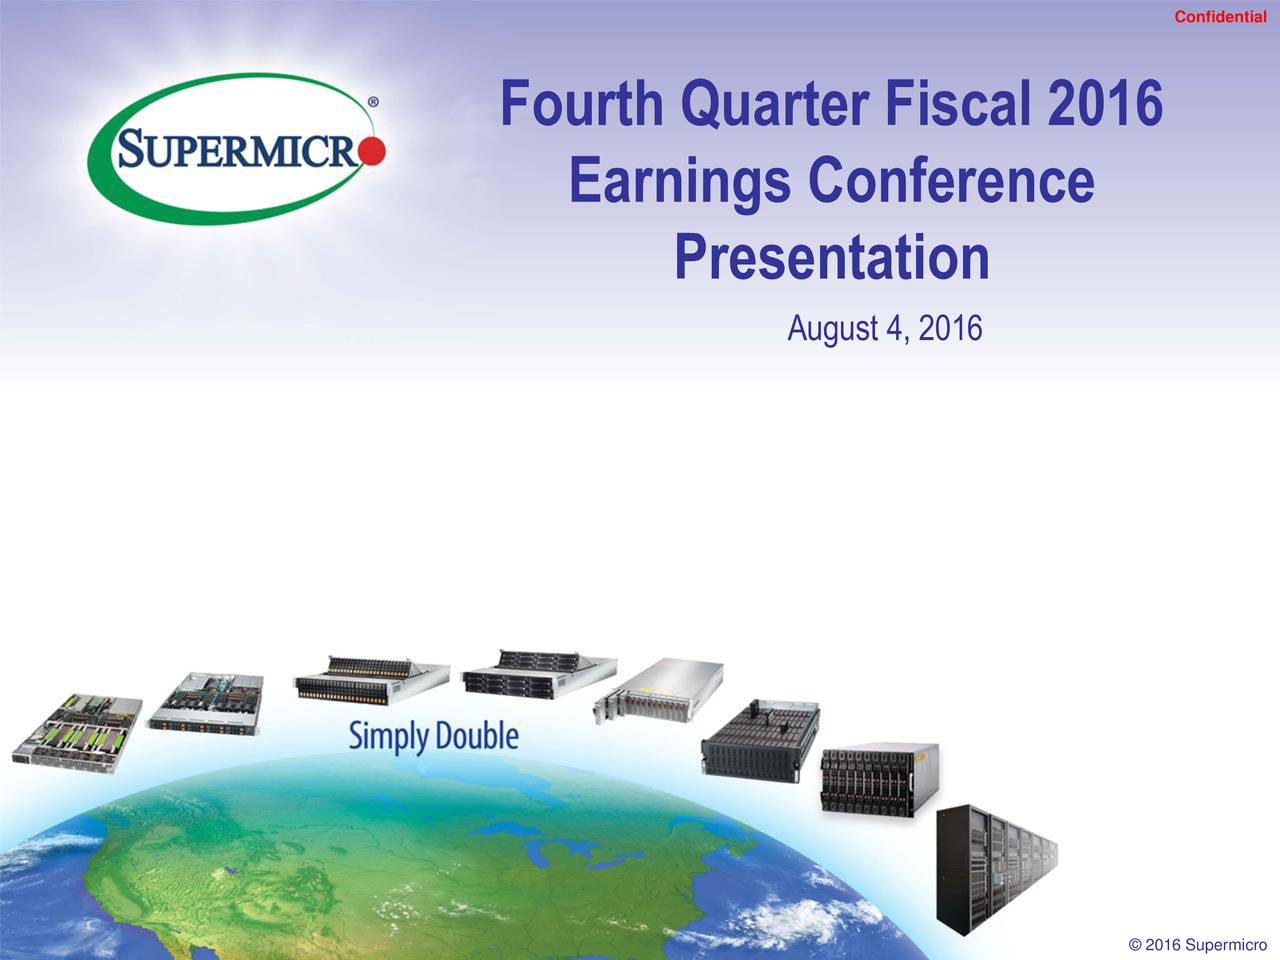 Fourth Quarter Fiscal 2016 Earnings Conference Presentation August 4, 2016